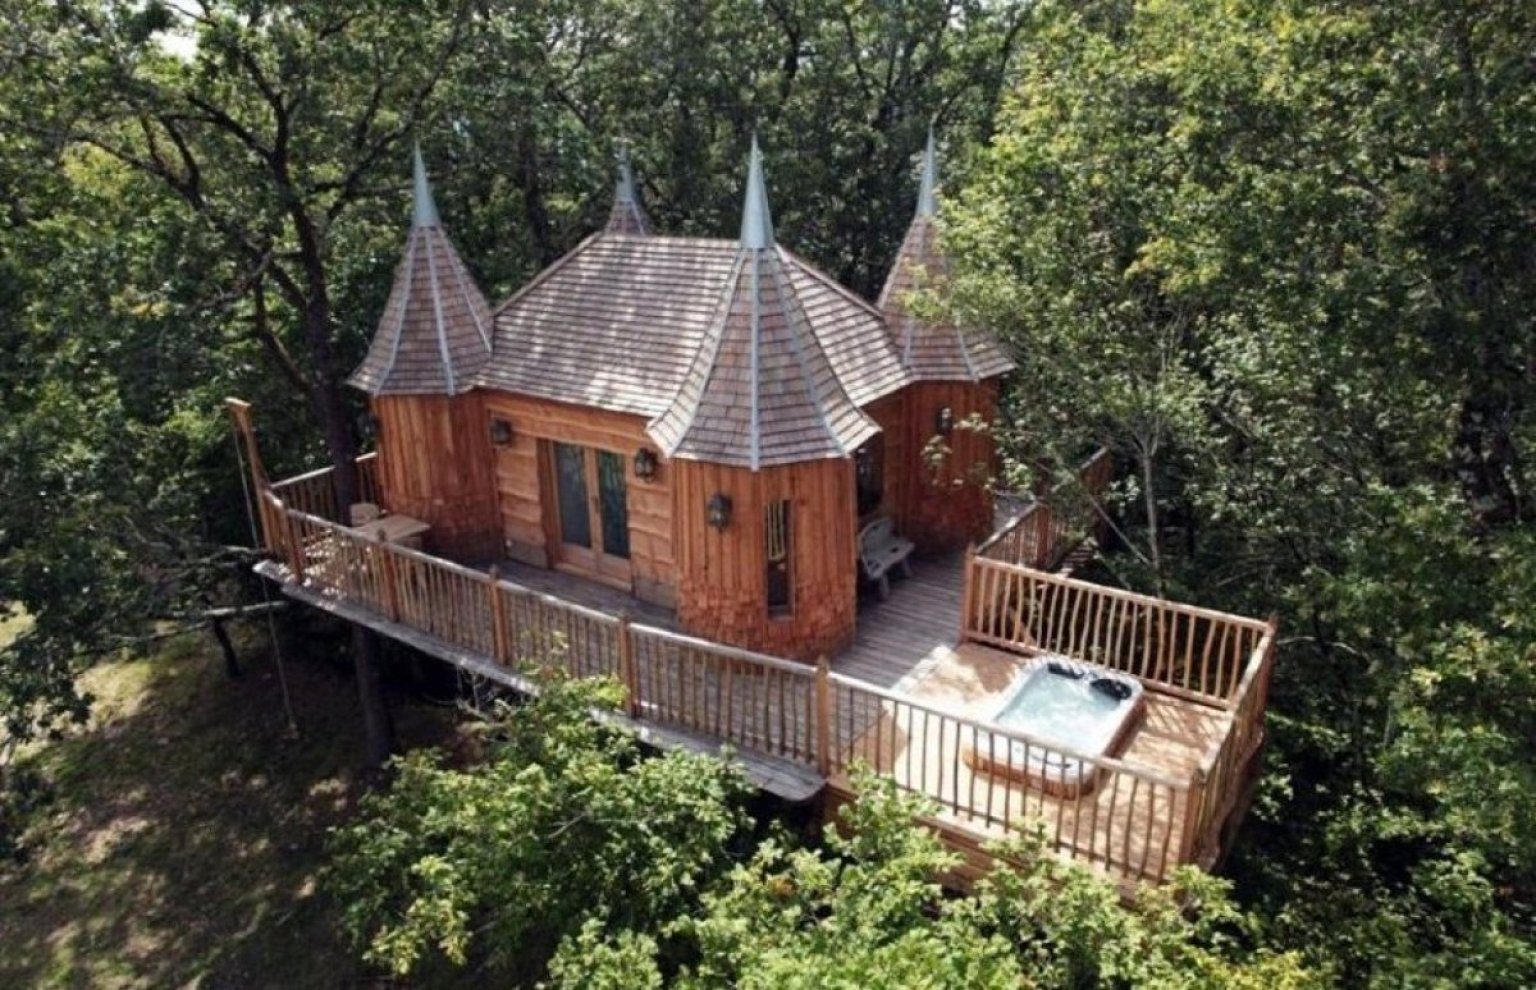 o-TREE-HOUSES-facebook.jpg